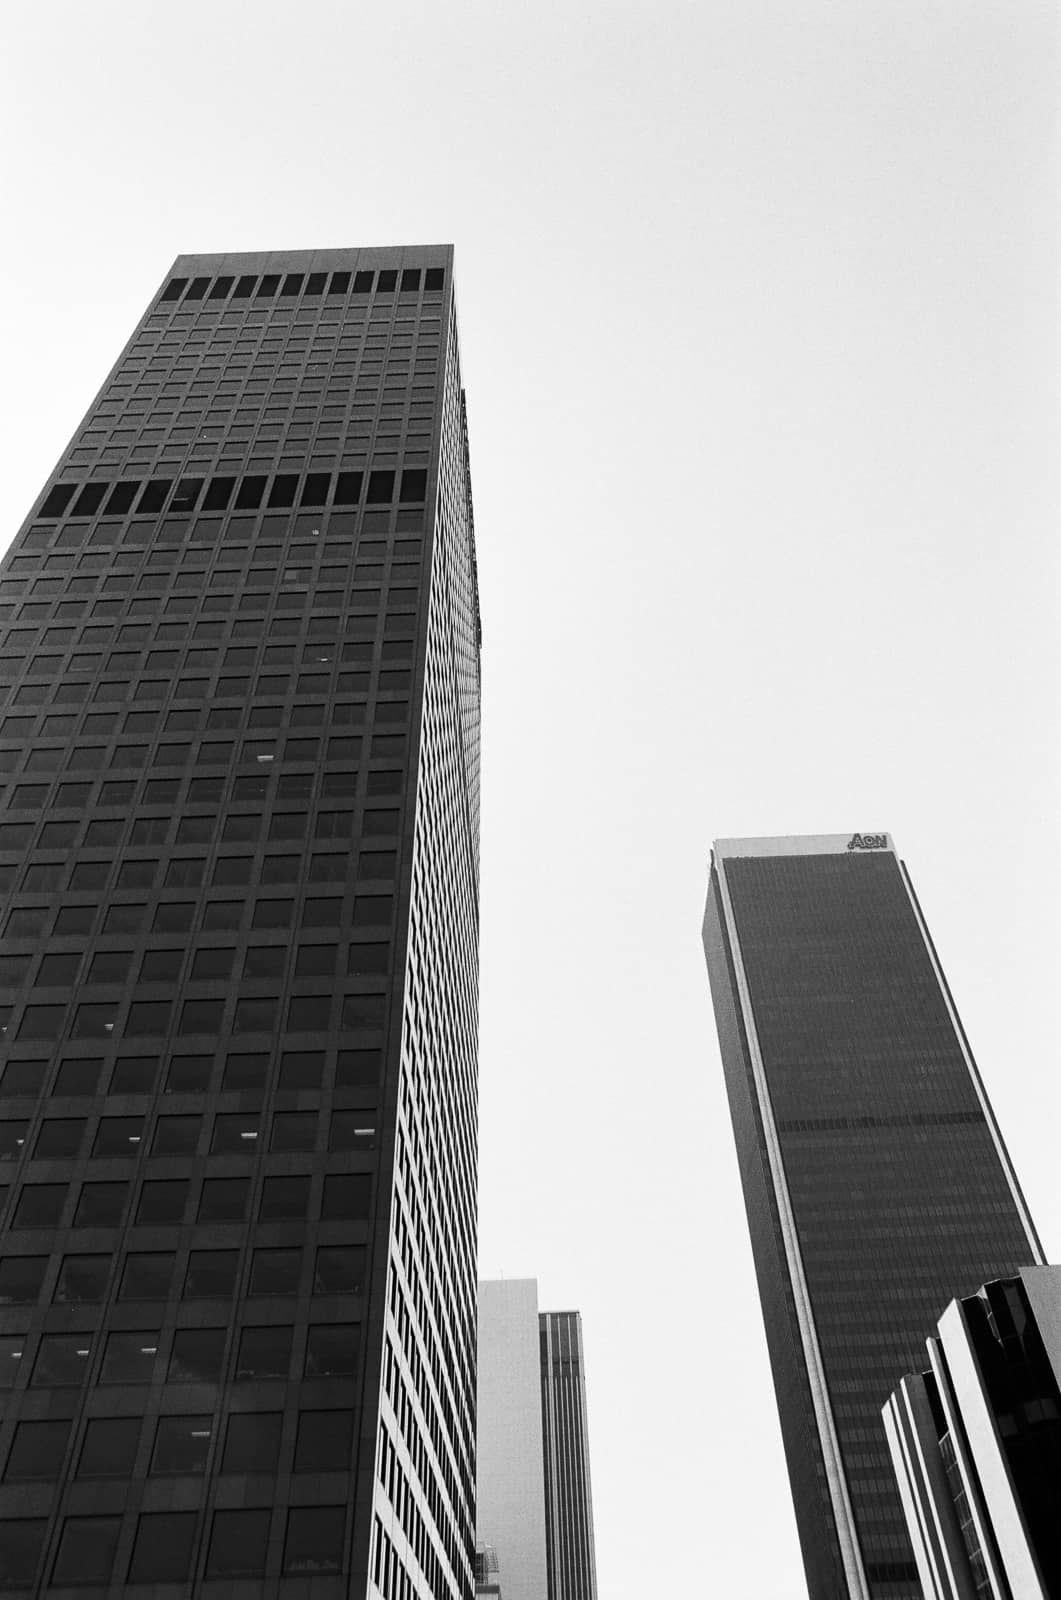 Los Angeles skyscrapers